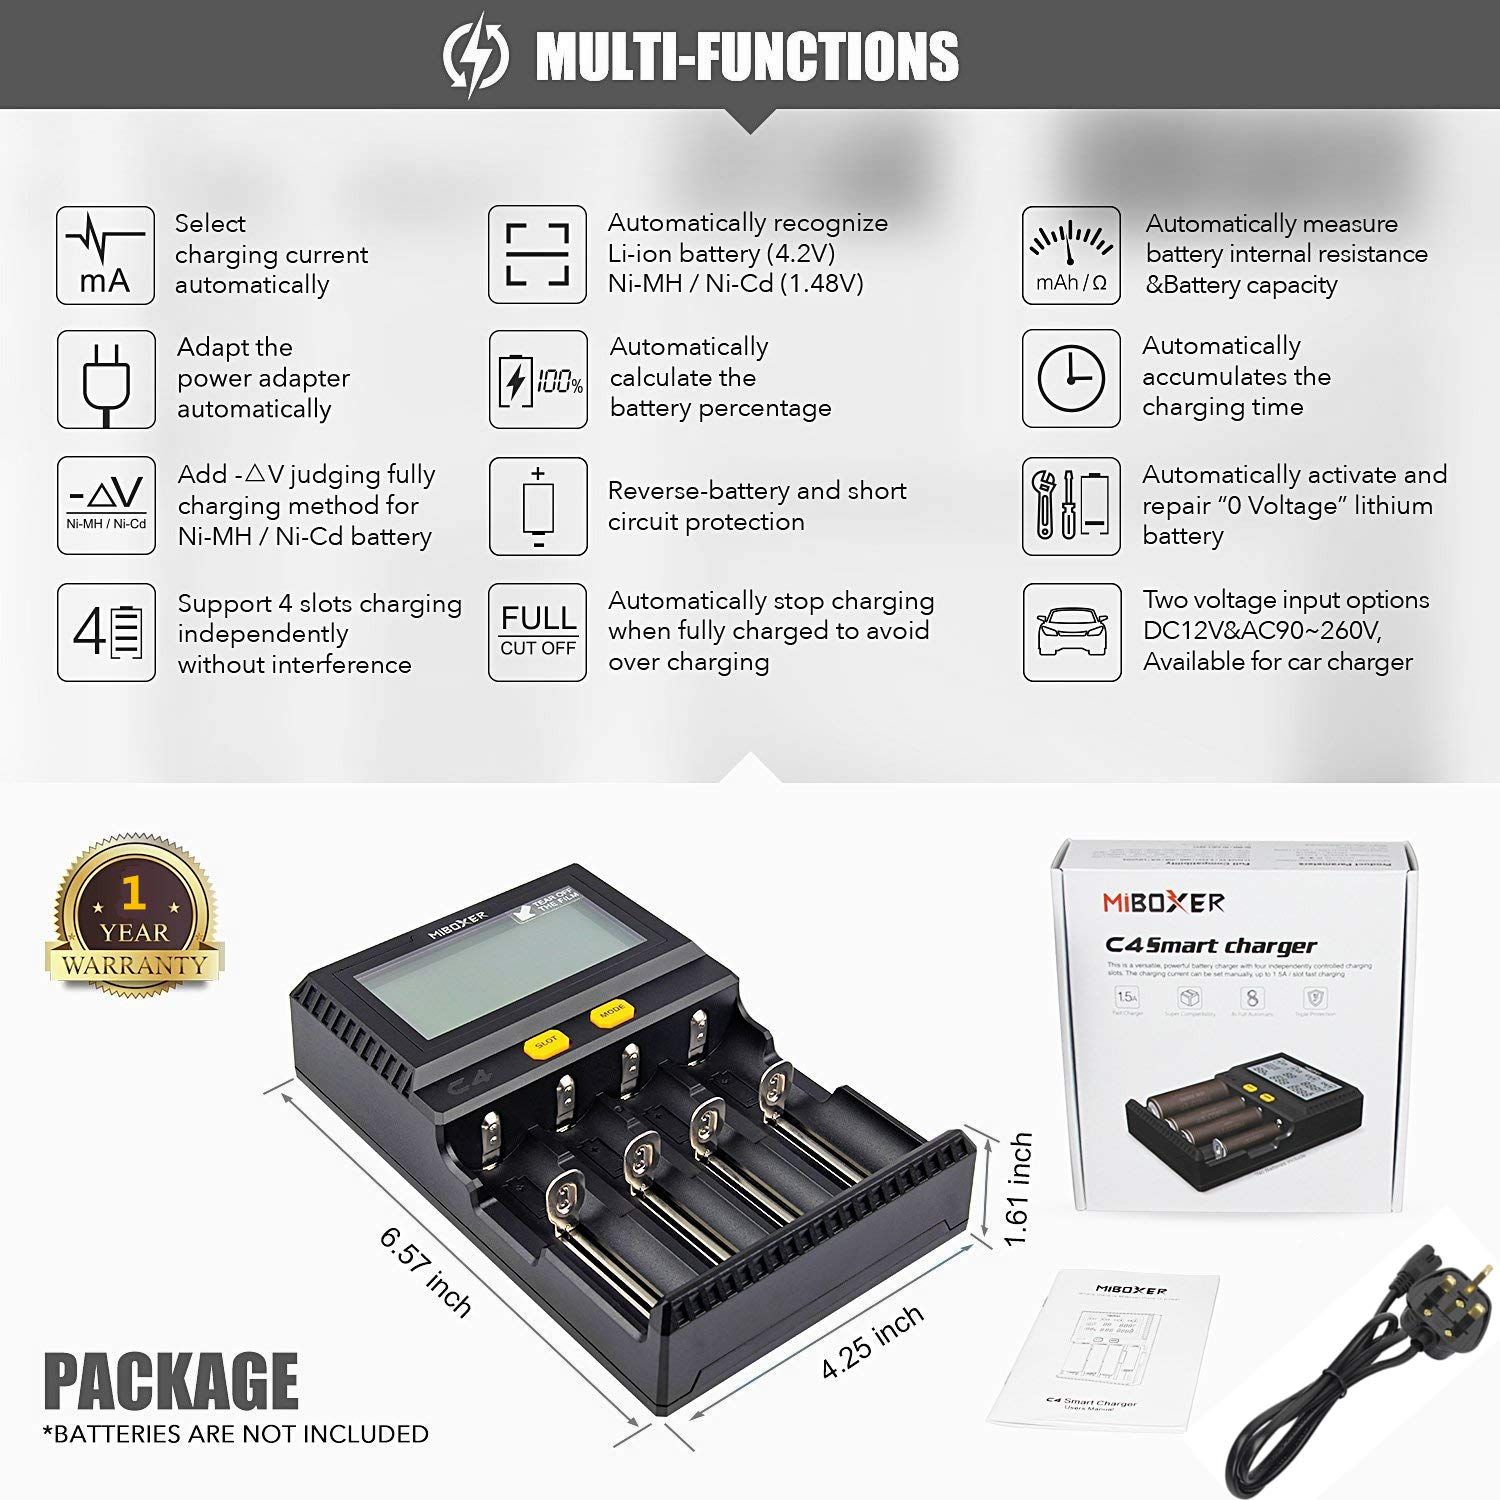 18650 Smart Battery Charger Universal Intelligent 4 Slot Automatic LCD Display for Li-ion Ni-MH Ni-Cd AA AAA AAAA C 21700 20700 22650 18490 18350 RCR123 Fire Prevention Material